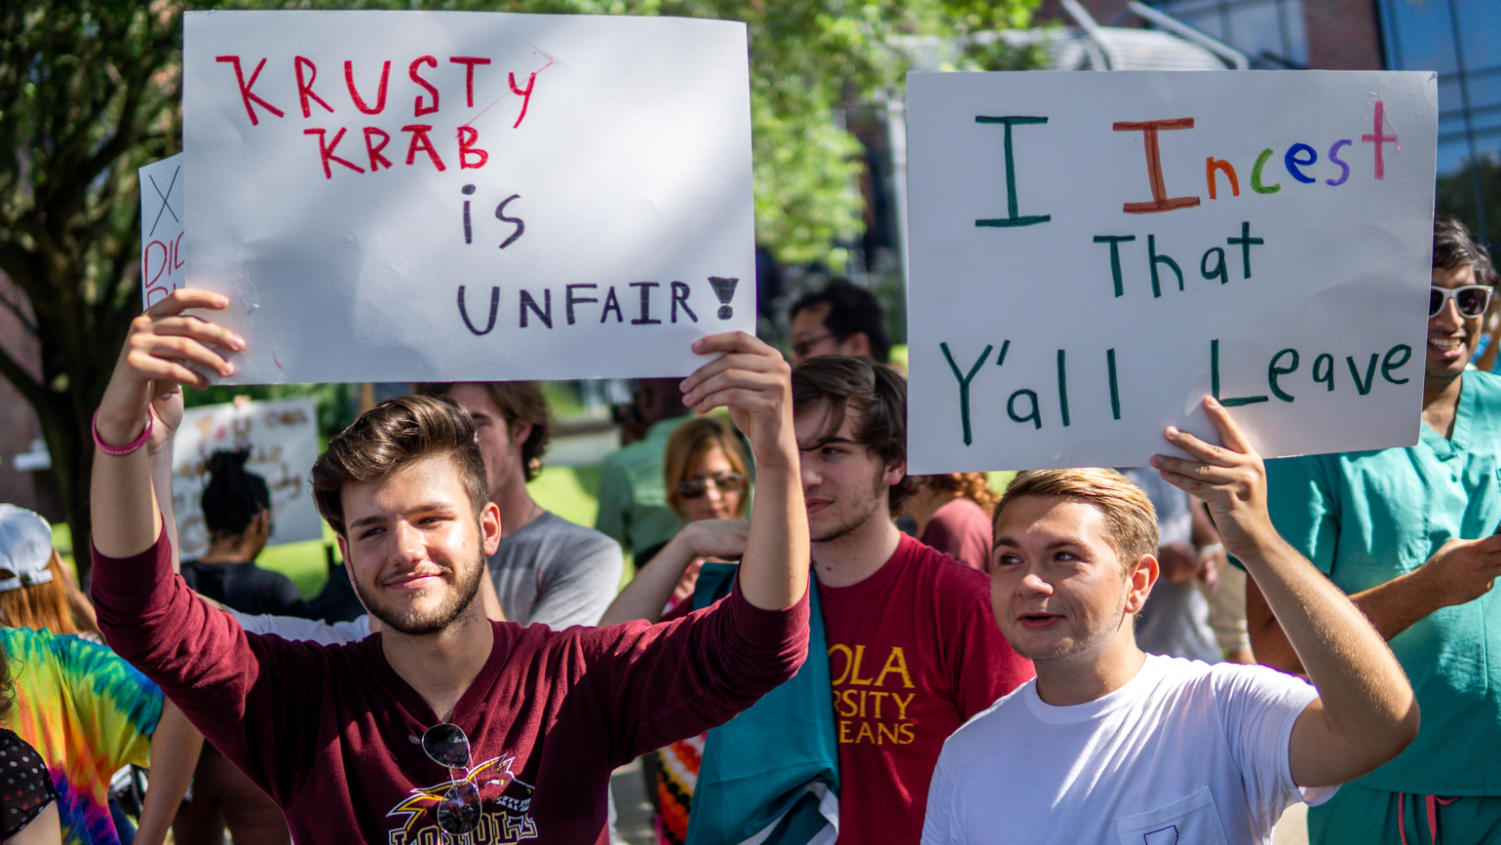 Loyola students and other supporters of the University went out of their way to parody protesting in and of itself, often using puns, pop-culture references, or simple jokes. Photo credit: Jacob Meyer